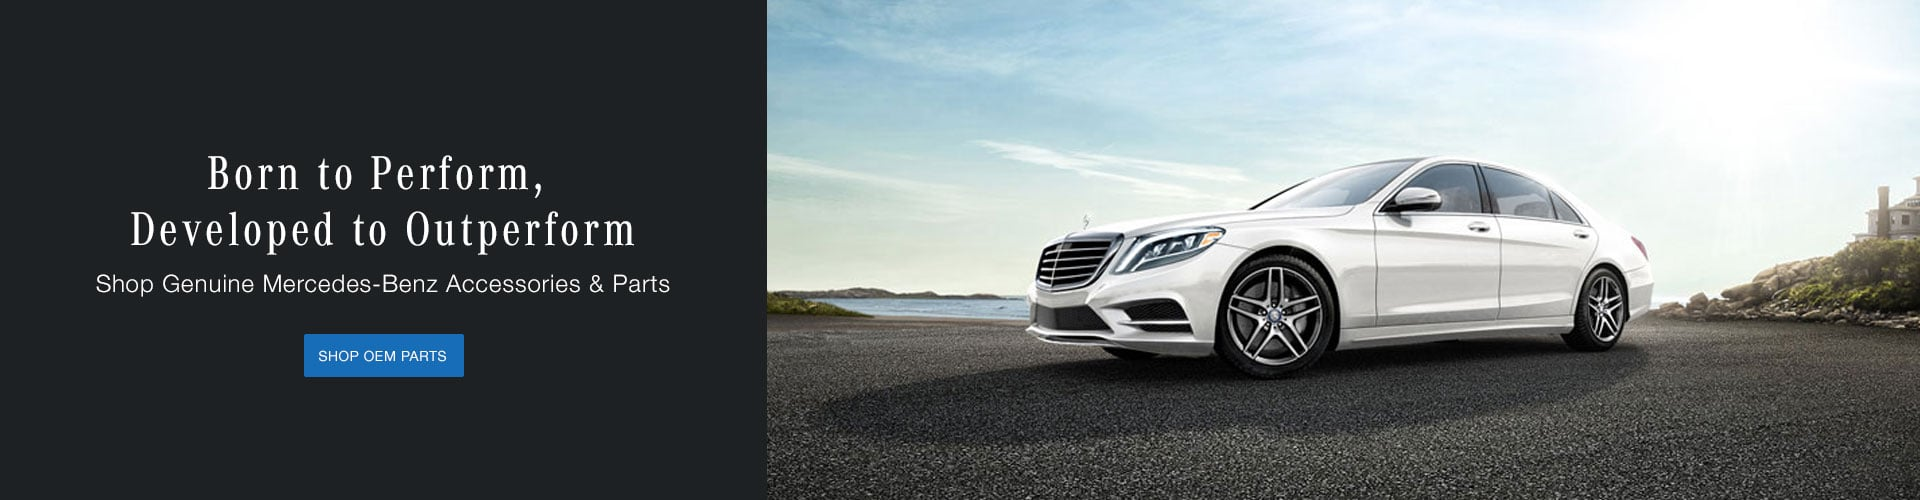 Genuine Mercedes-Benz Parts and Accessories